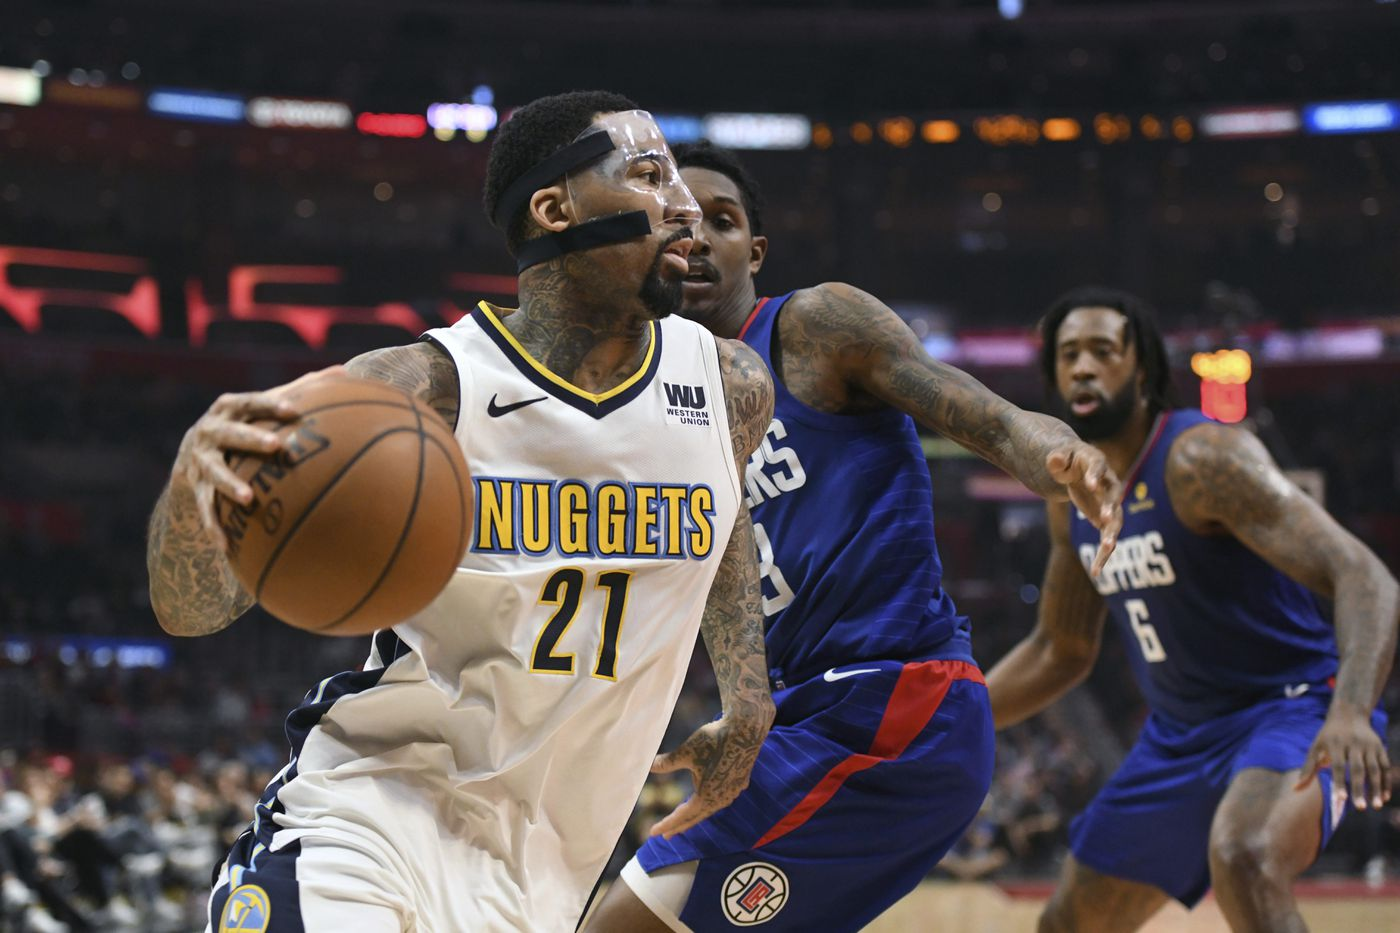 Sixers acquire Wilson Chandler from Denver Nuggets in trade